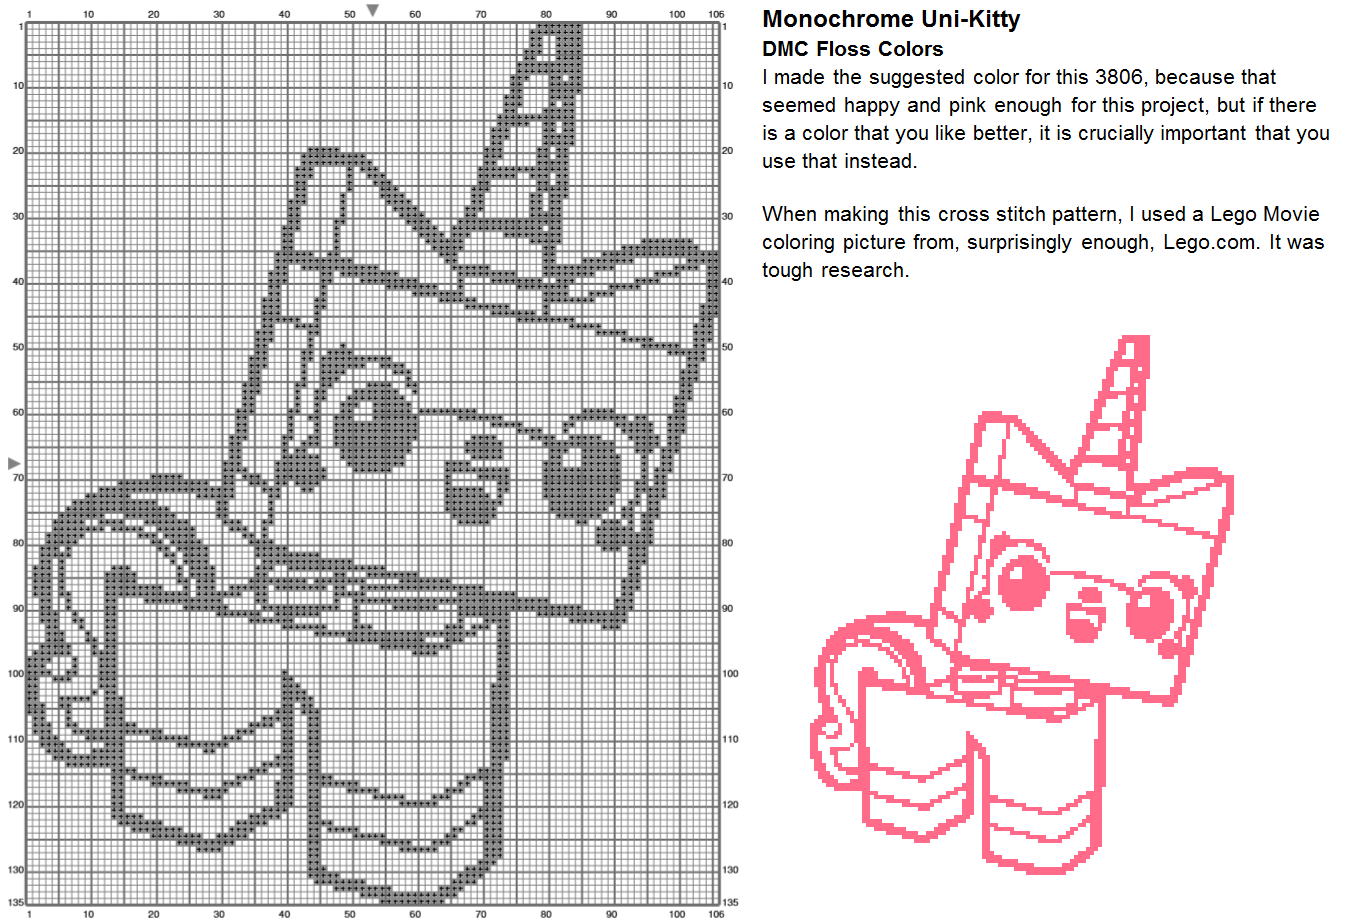 Princess unikitty coloring pages - With That Posted I Have Another Wip Of My Cross Stitch Of Kyubey From Madoka Magica Which Is The Only Cross Stitch That I Ve Been Working